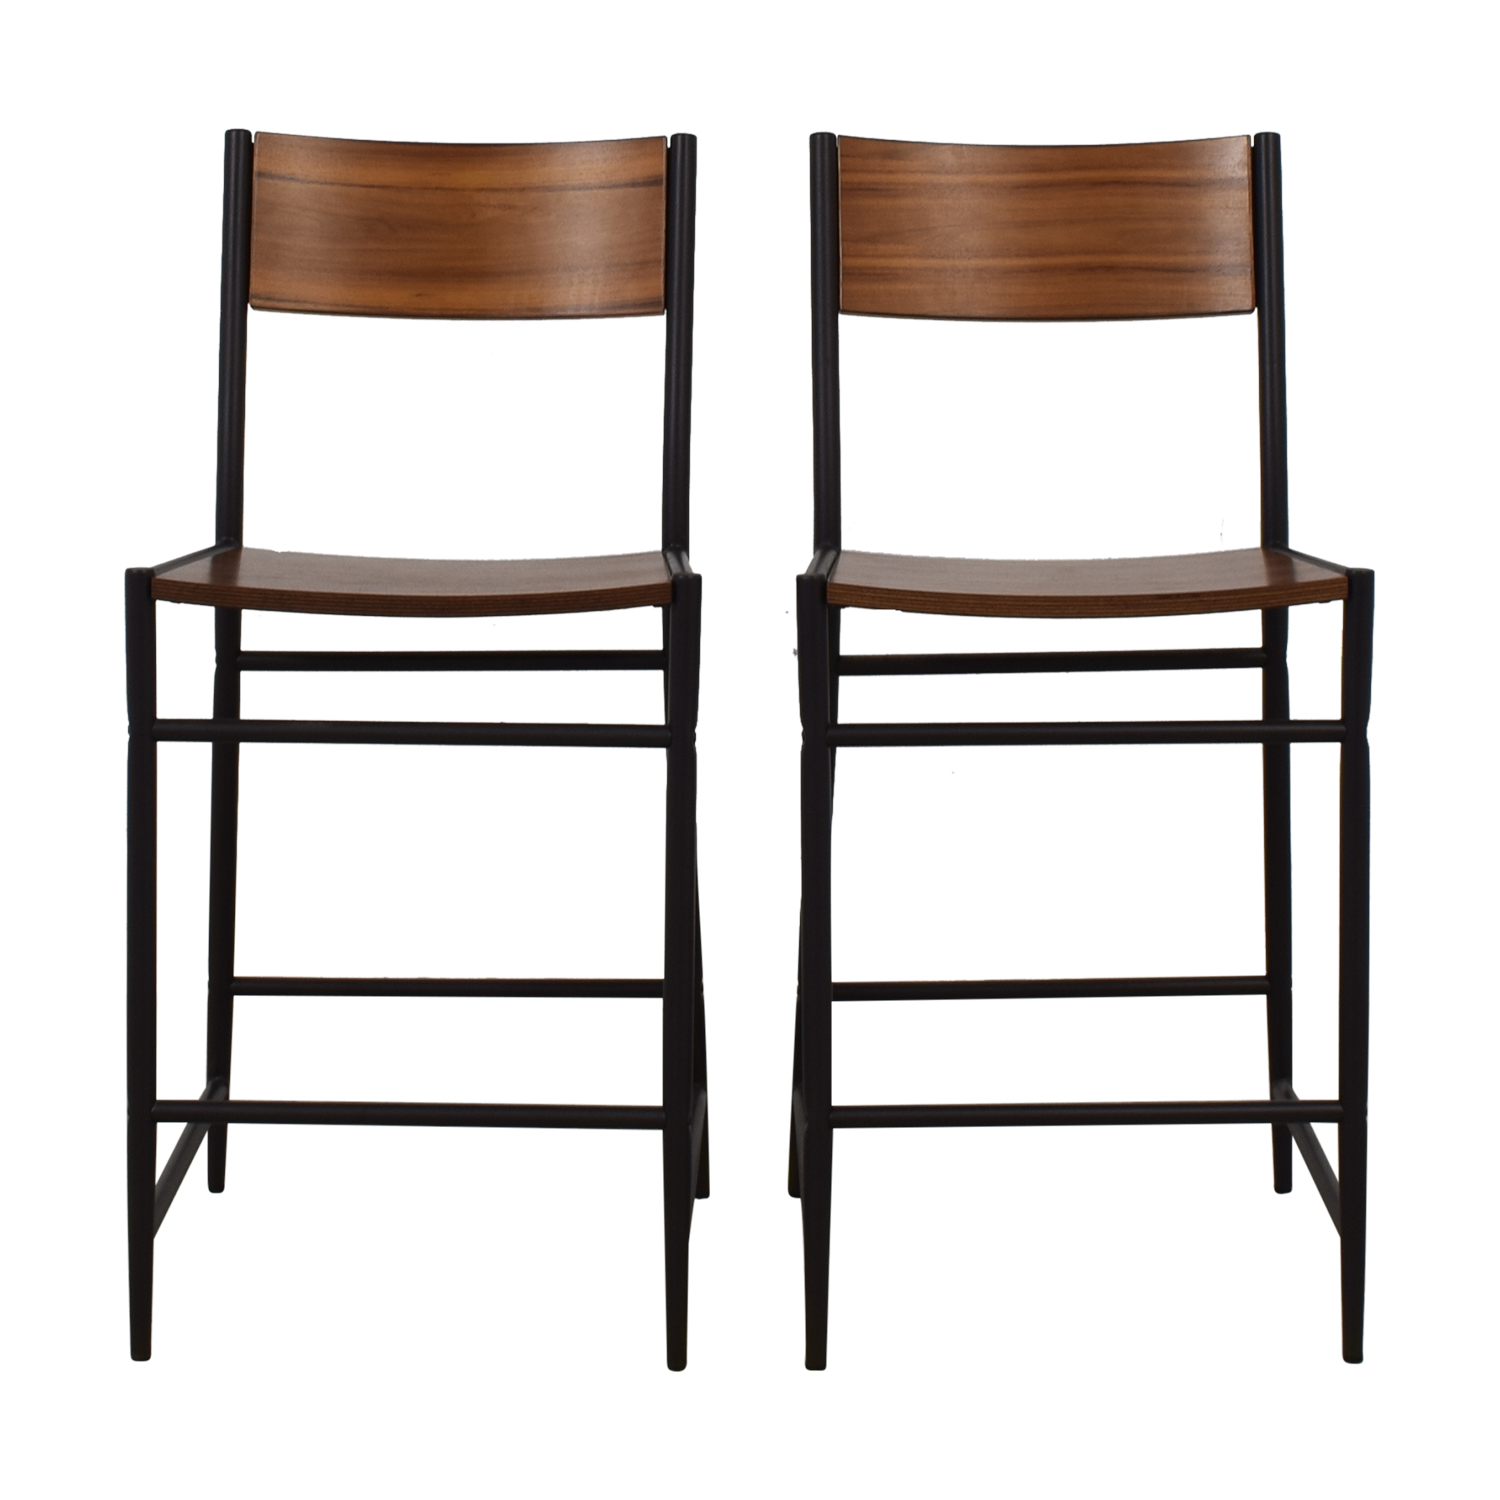 West Elm West Elm Acacia Counter Stools brown & black